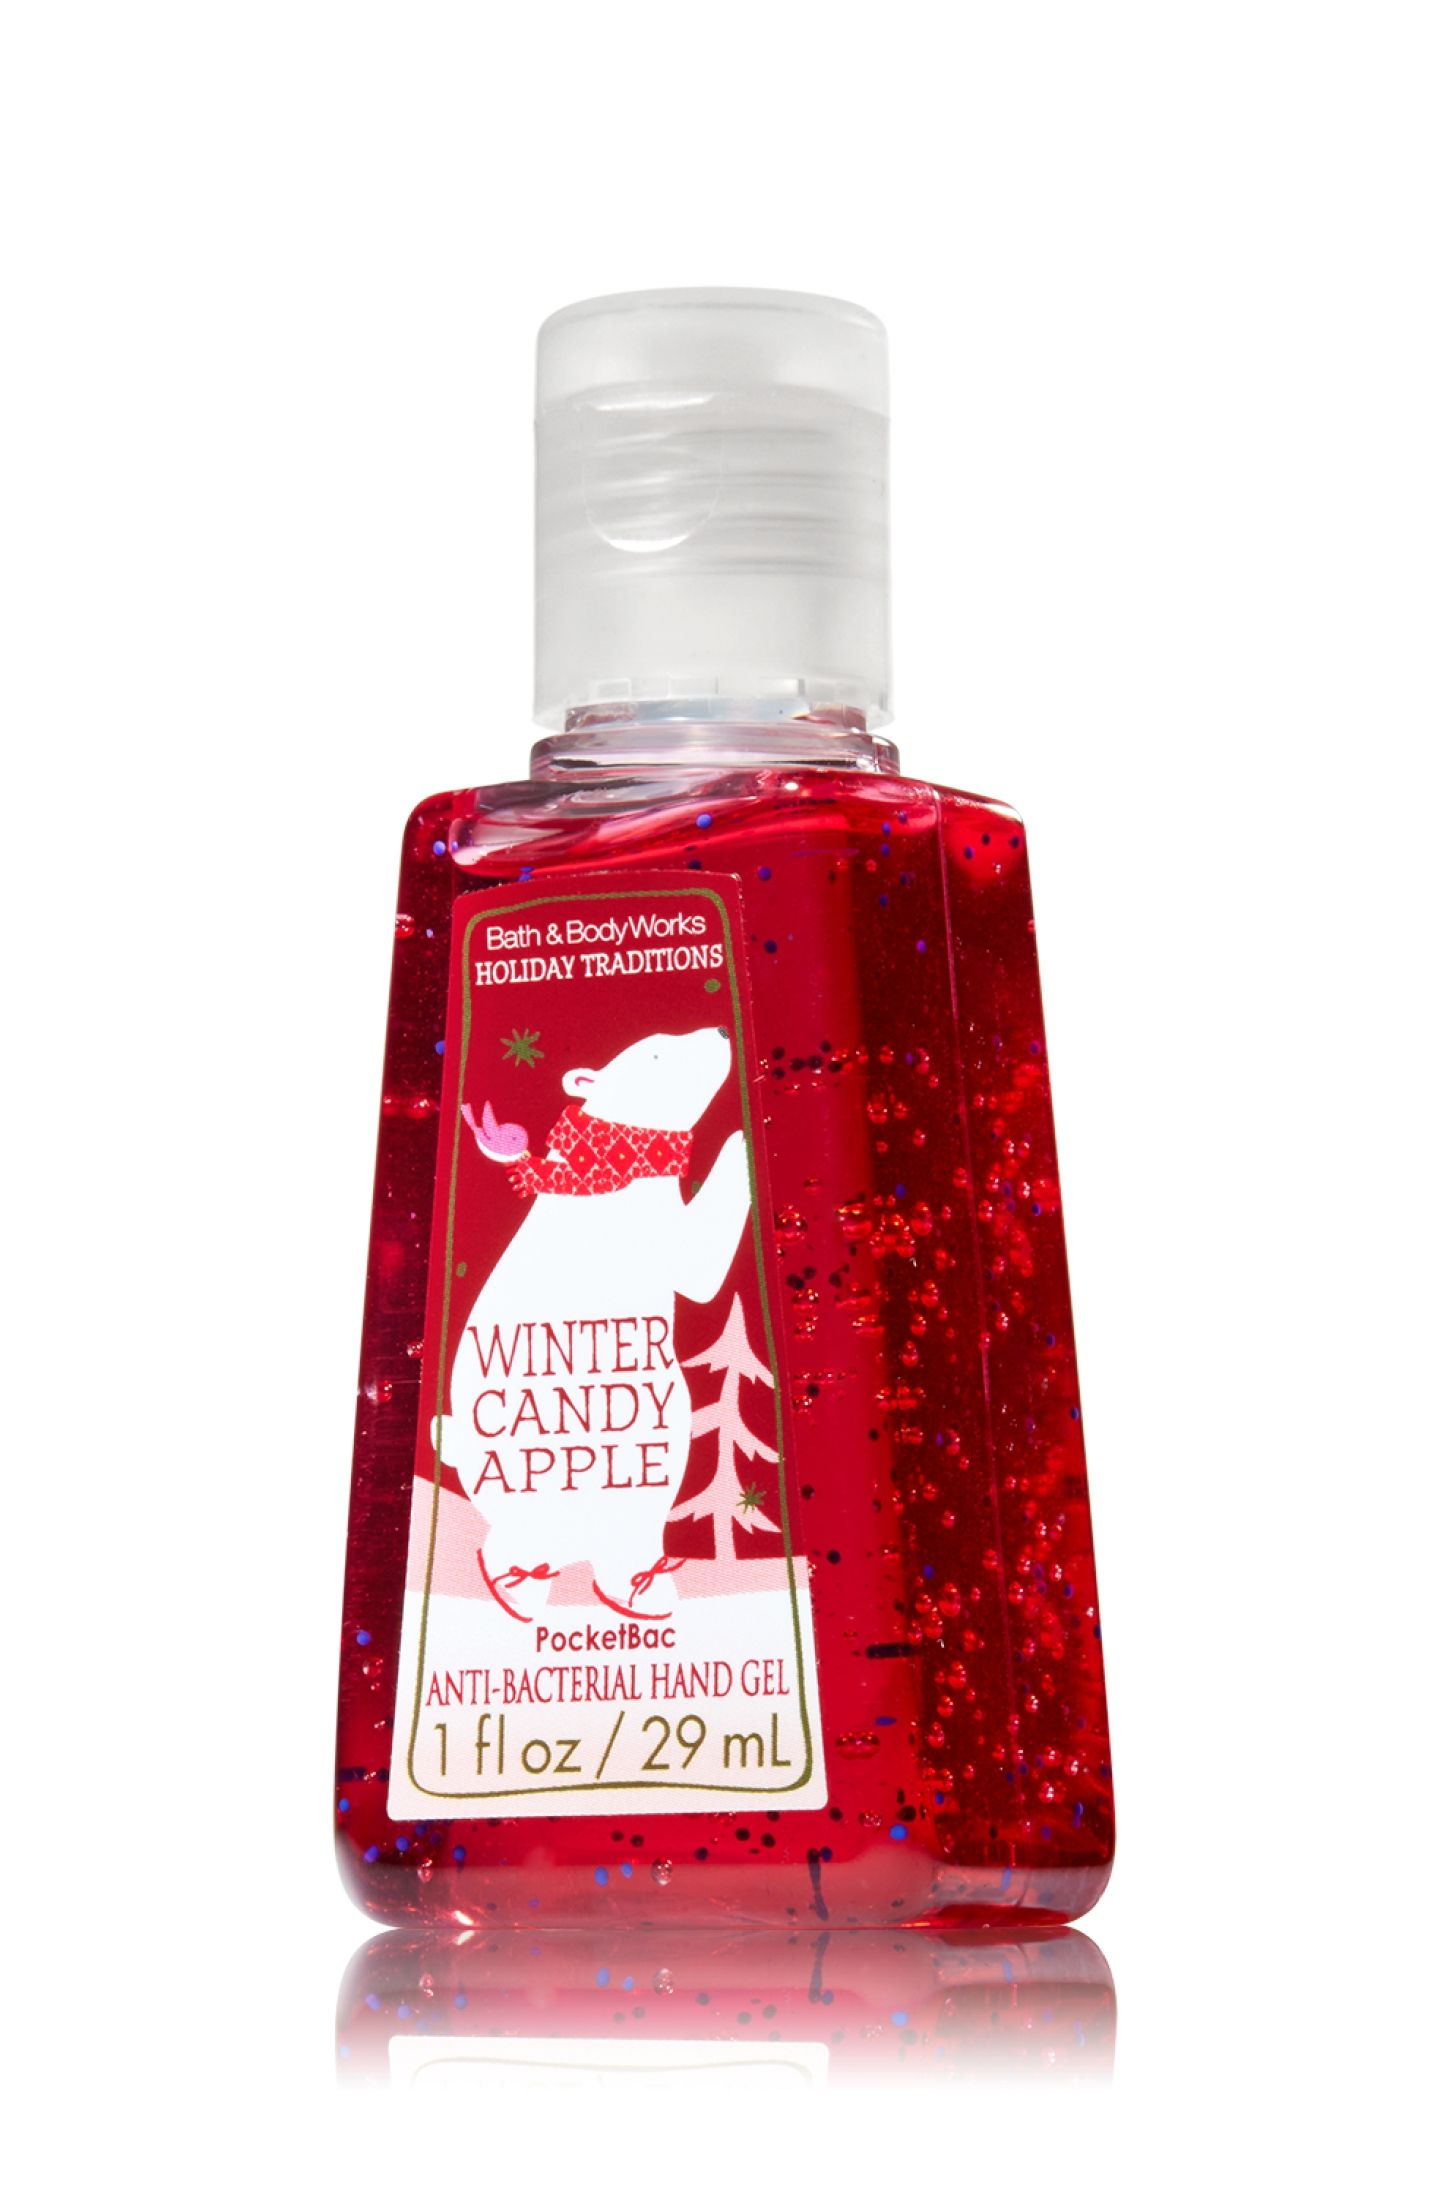 Winter Candy Apple Pocketbac Sanitizing Hand Gel Soap Sanitizer